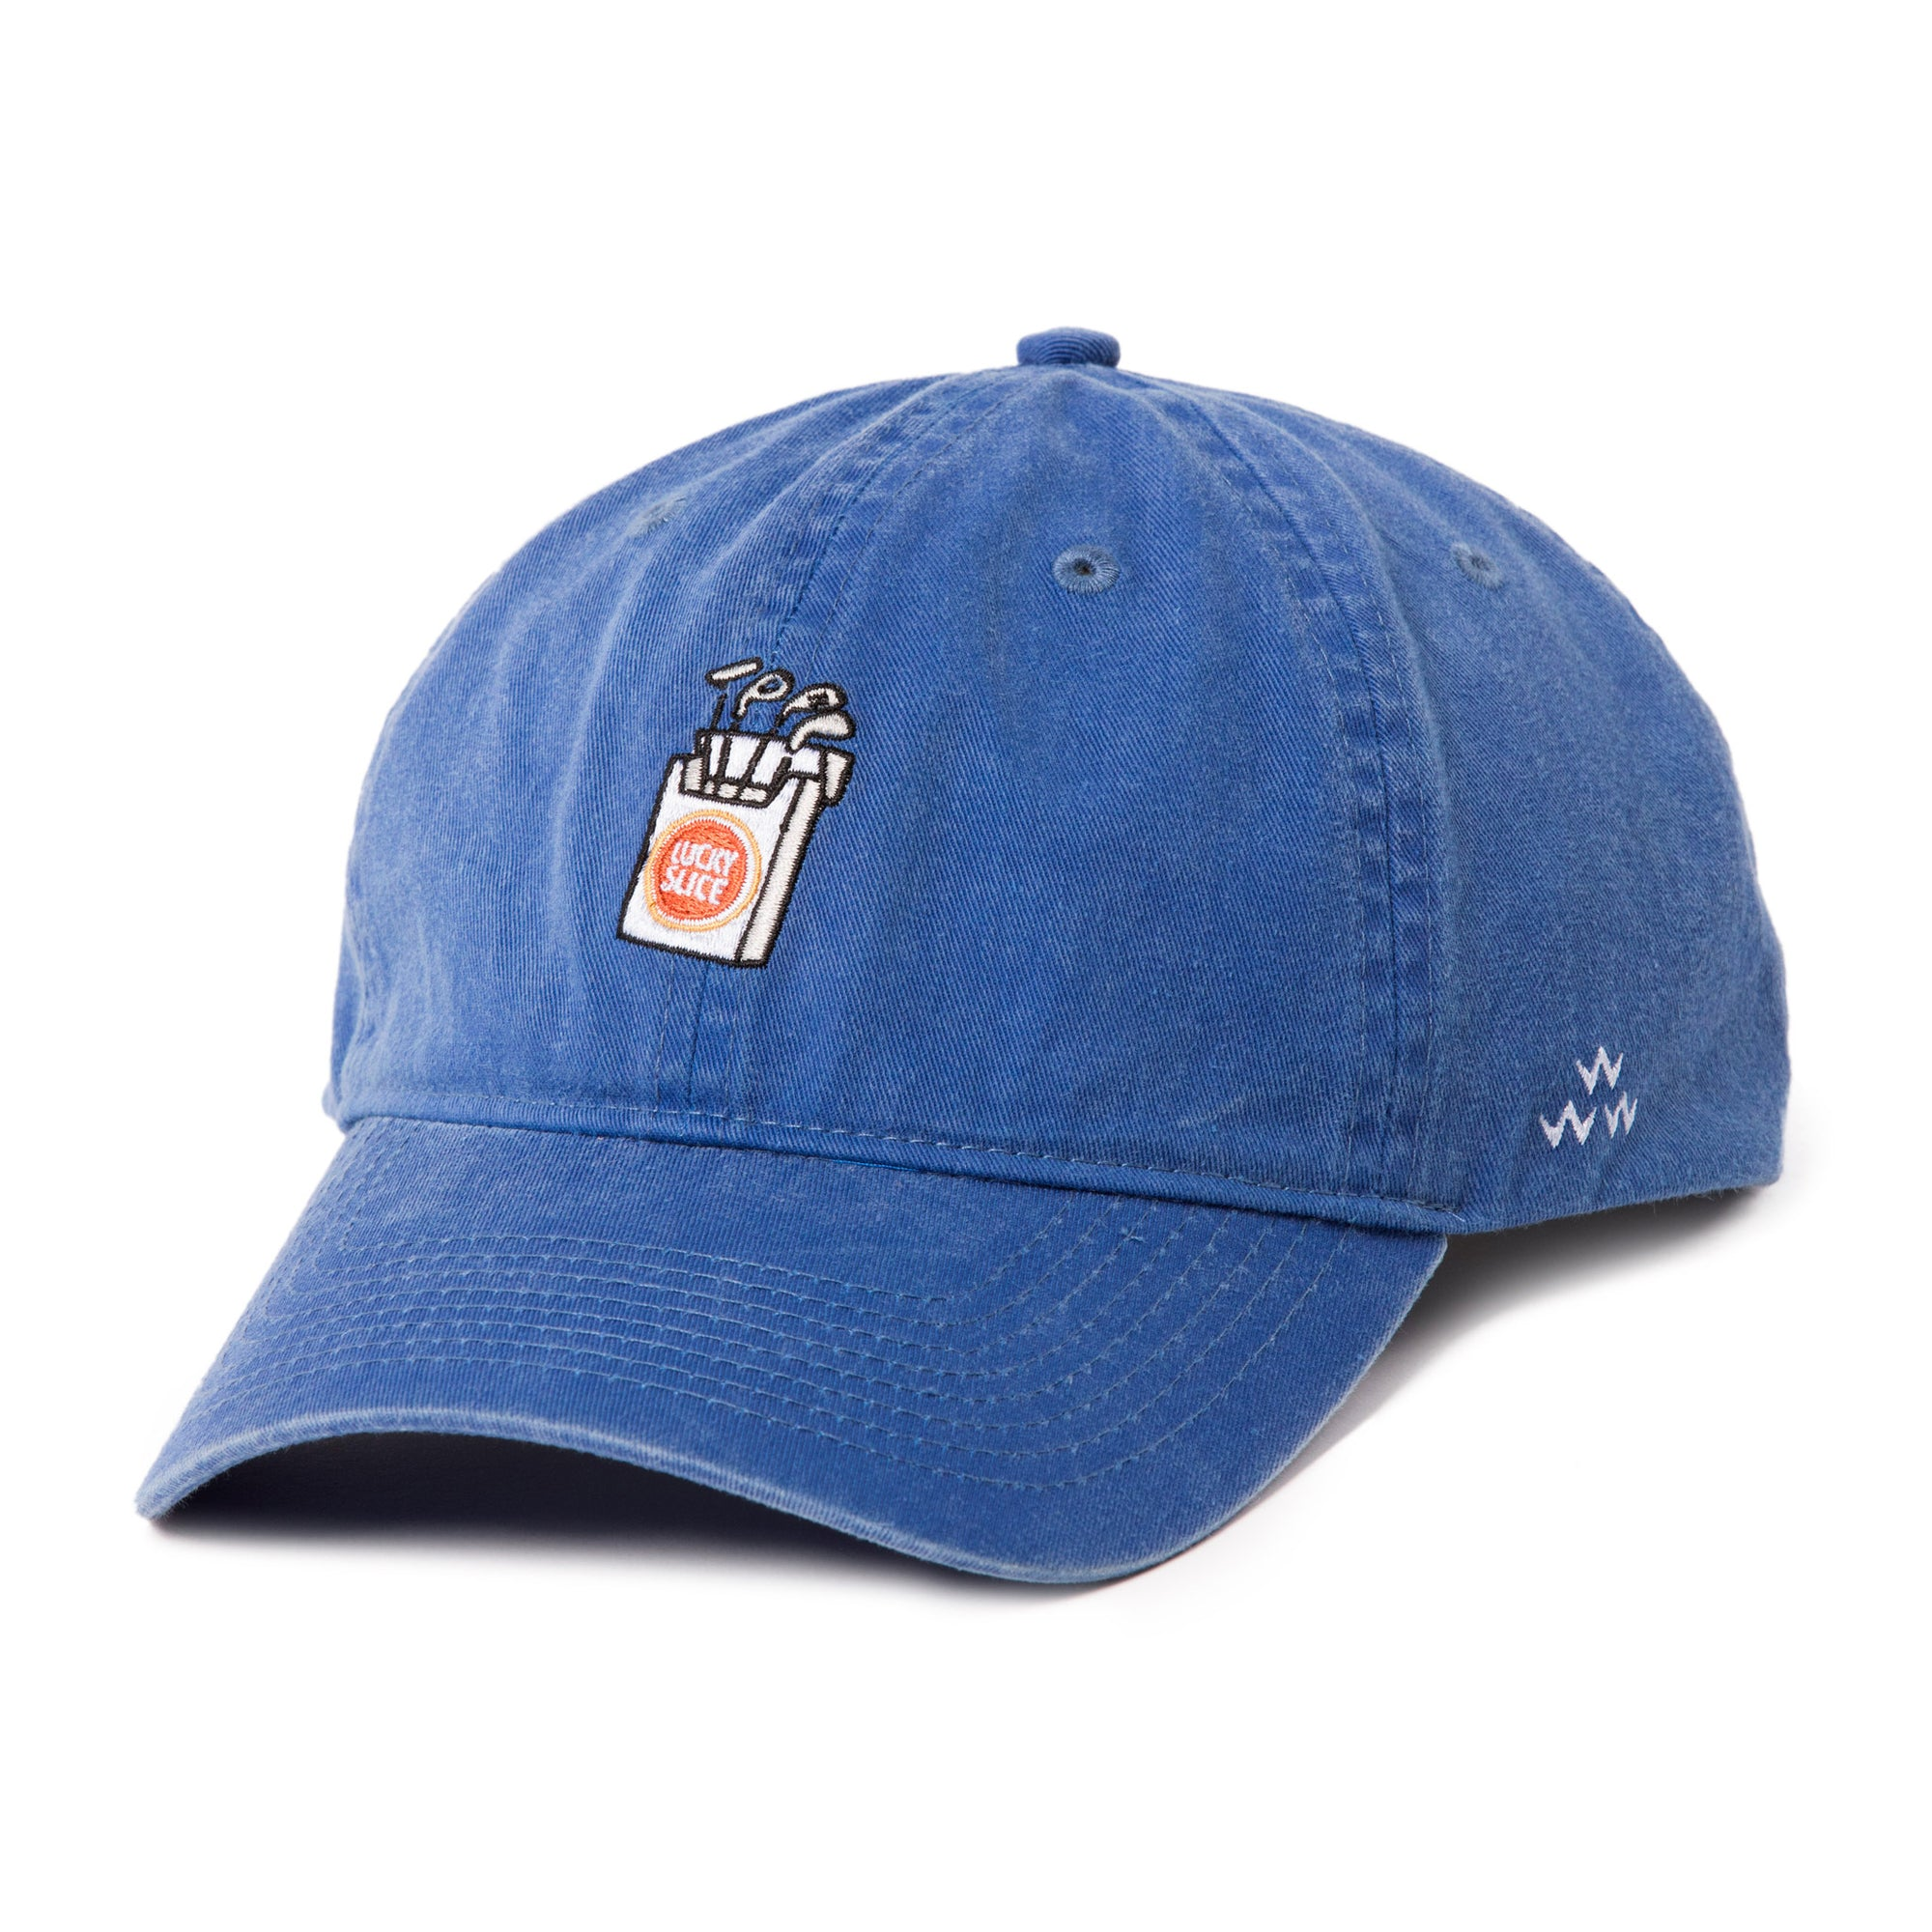 birds-of-condor-blue-golf-lucky-slice-dad-cap-hat-front